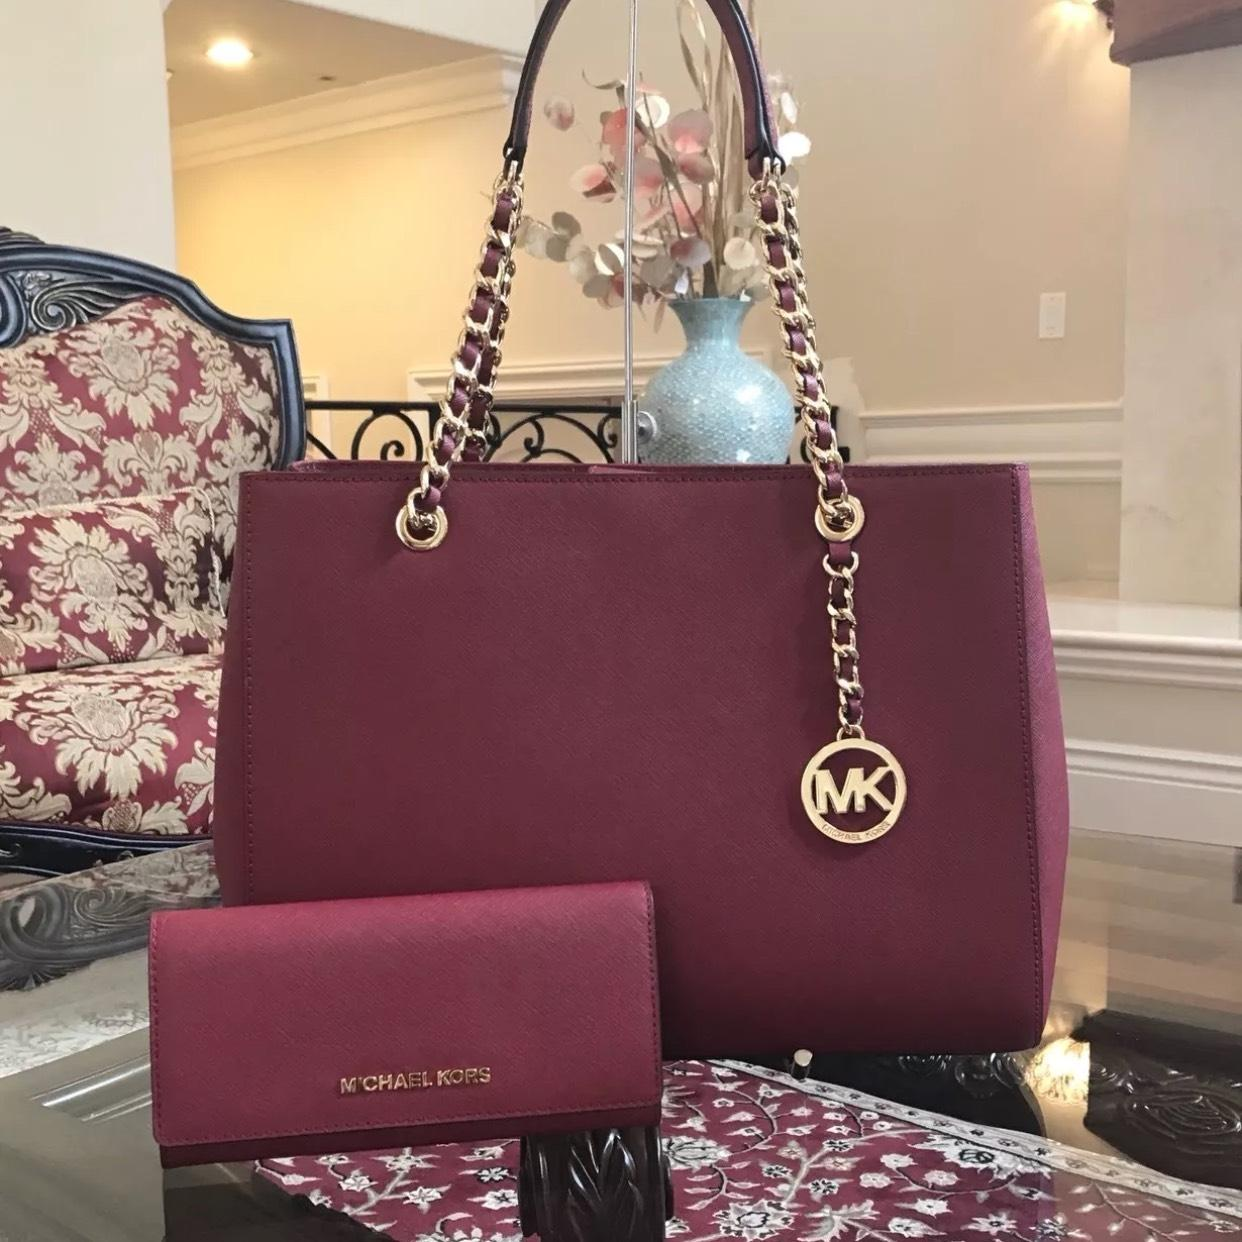 ecd62eec4b73 ... large drawstring tote black mk signature 41e56 953f8  usa michael kors  black saffiano leather chain susannah shoulder bag 0986b 0ca5a